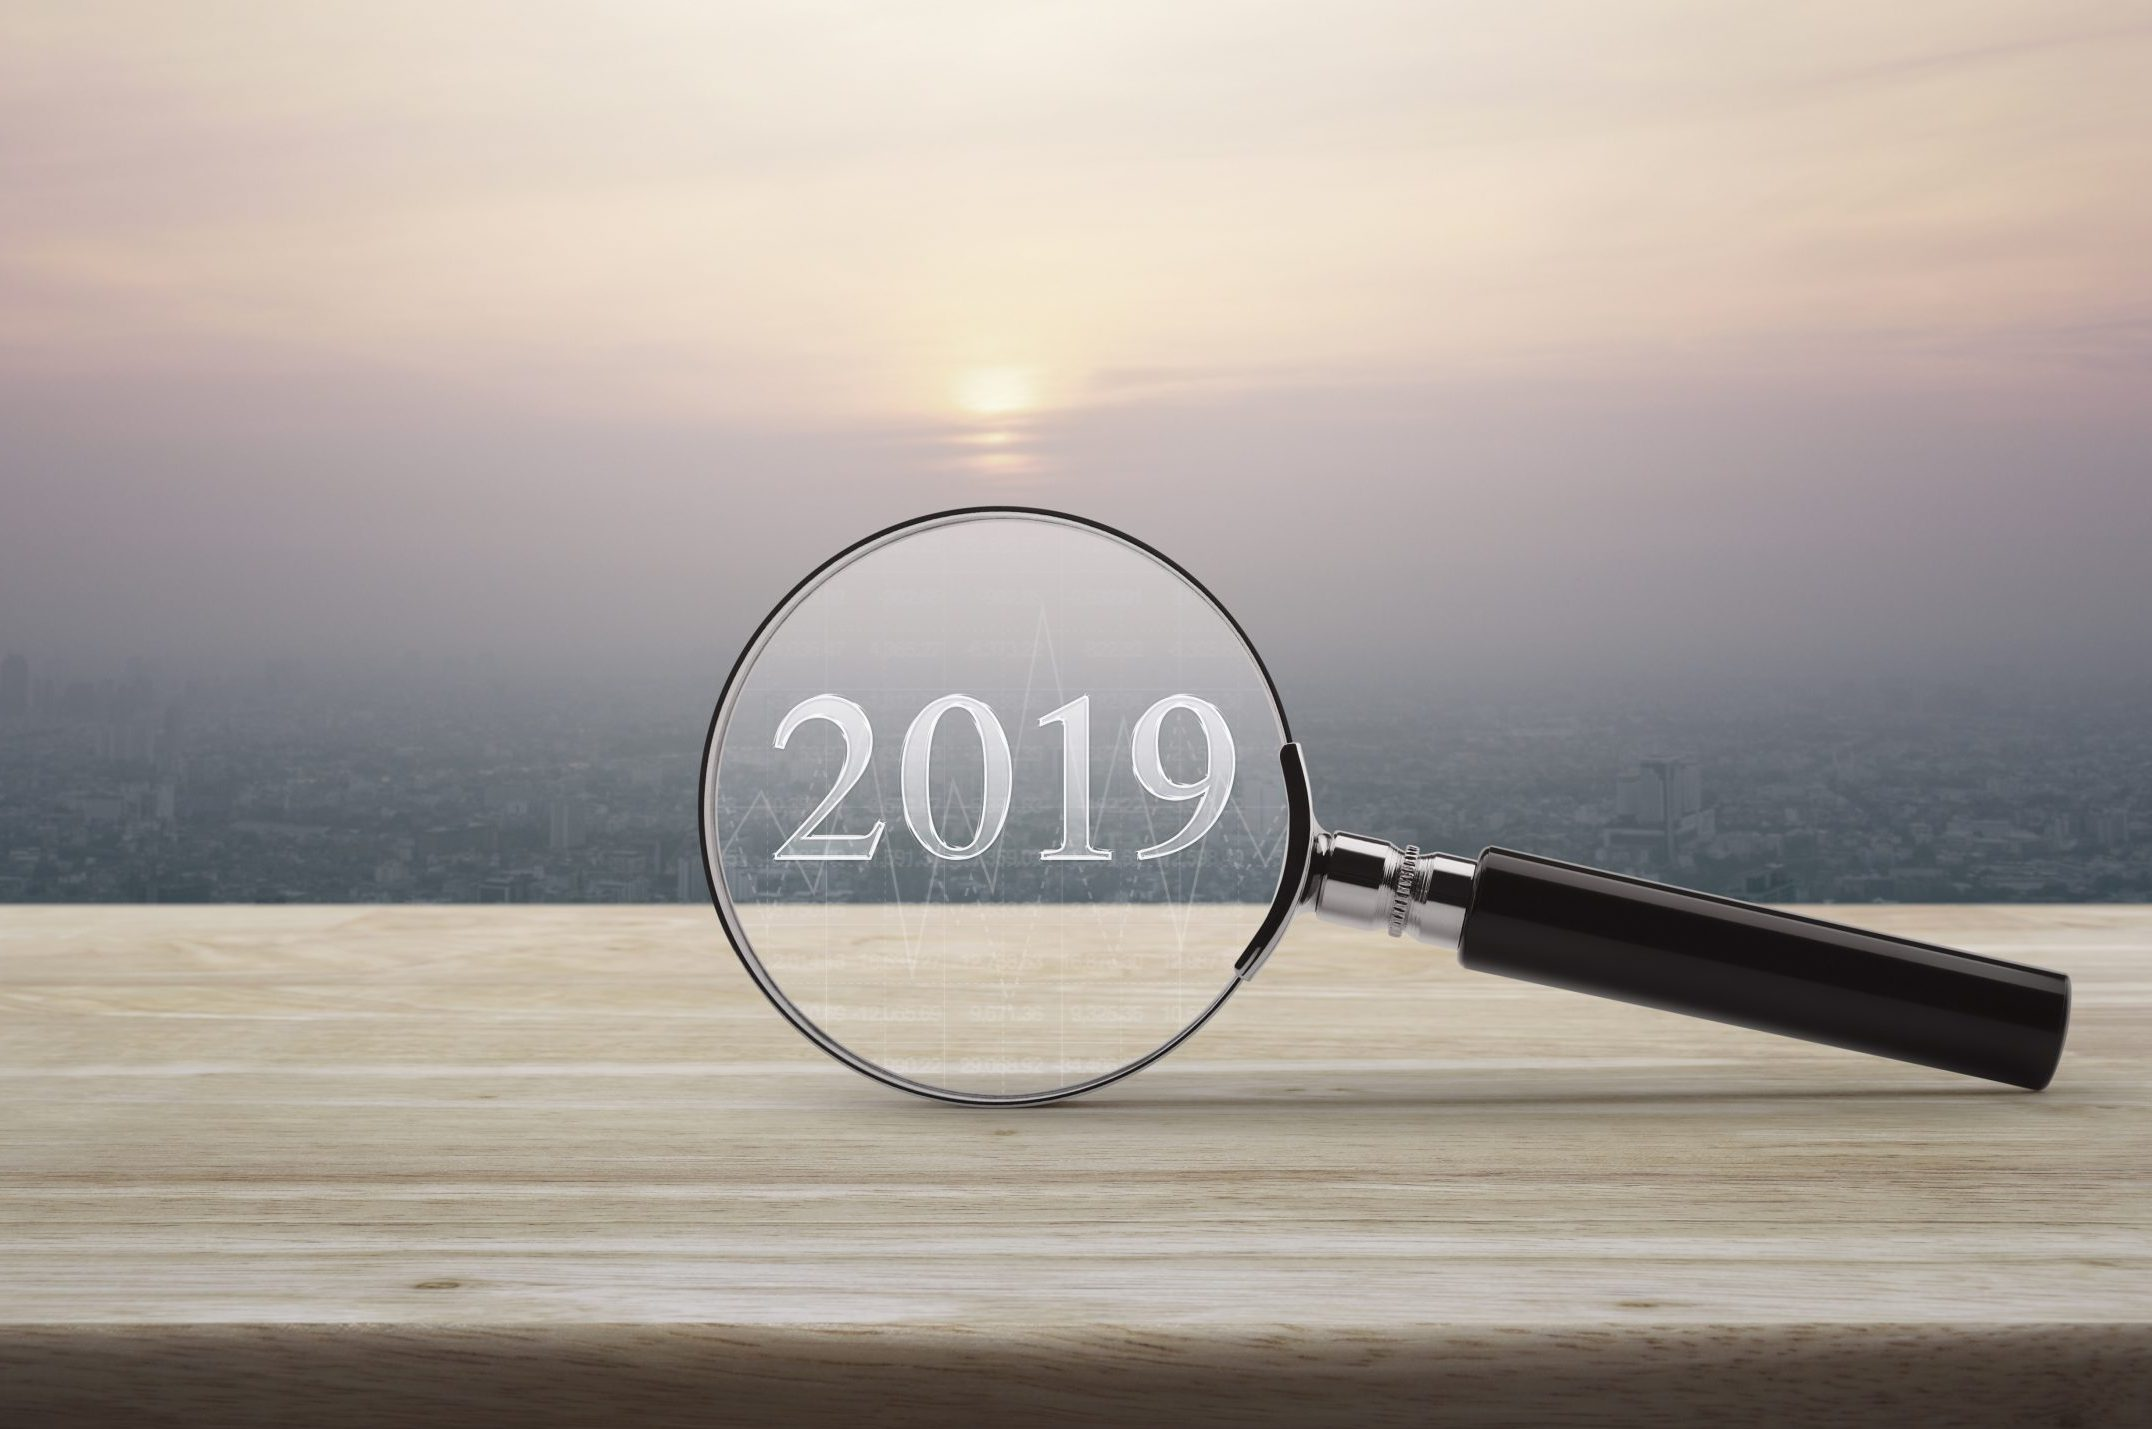 2019 magnifying glass